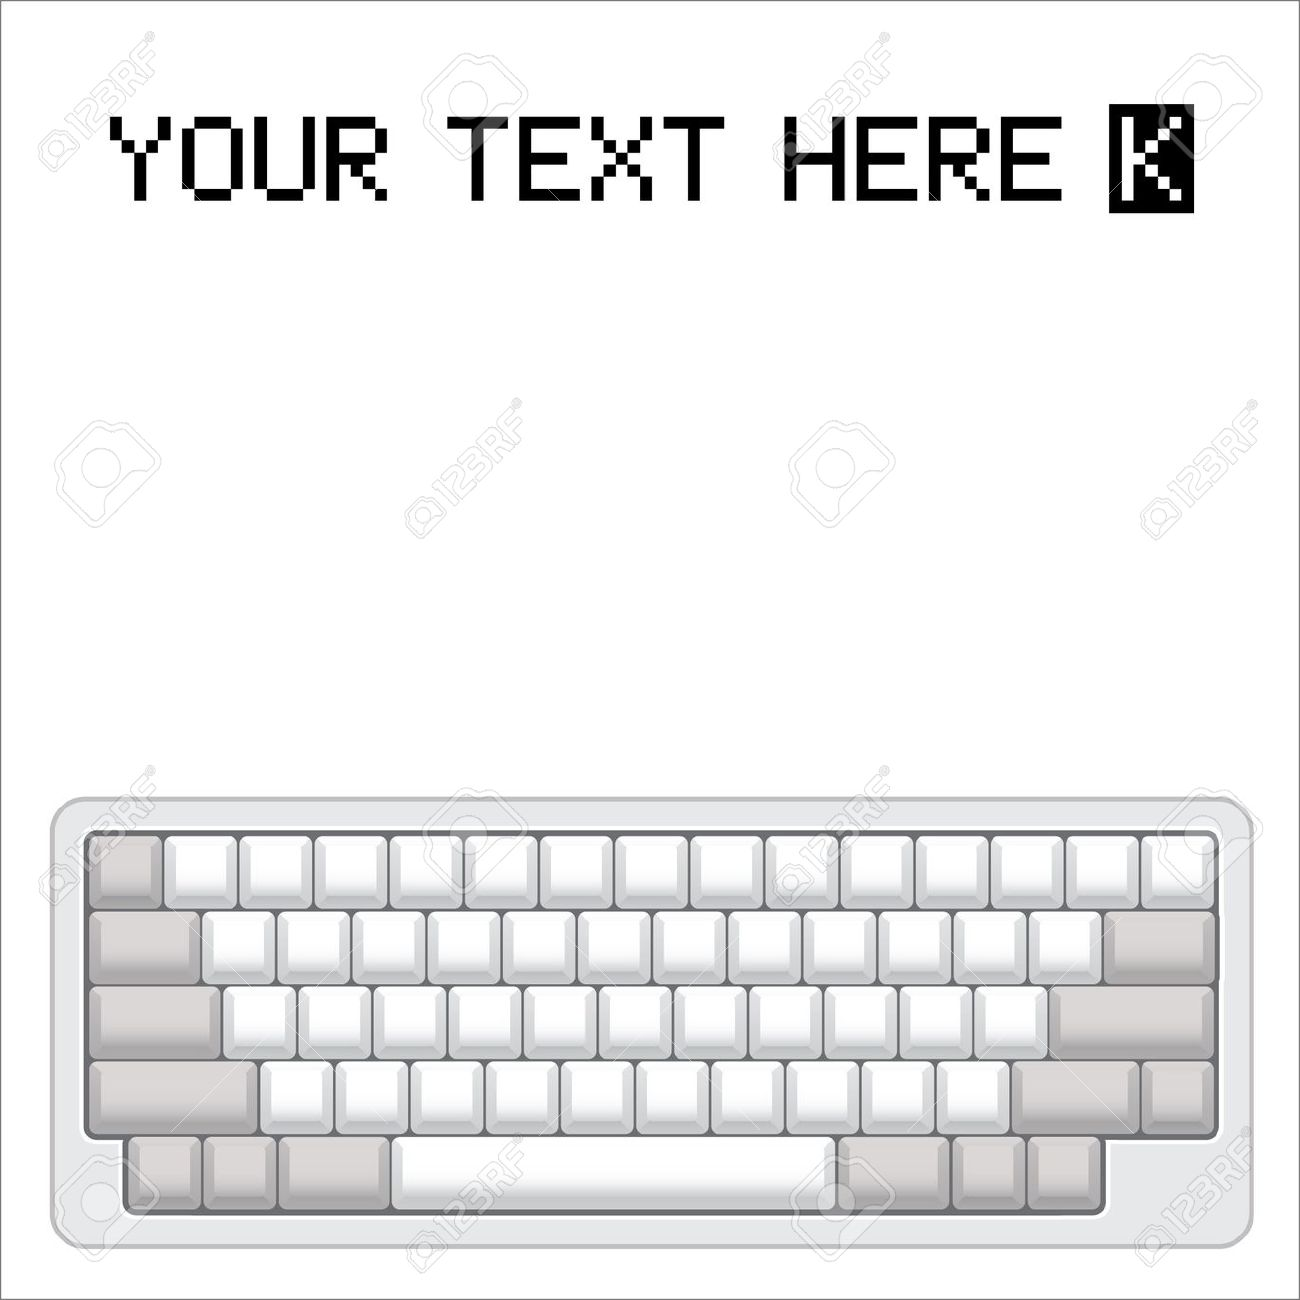 Blank computer keyboard clipart clip Blank Computer Keyboard Layout - Realistic Illustration Royalty ... clip